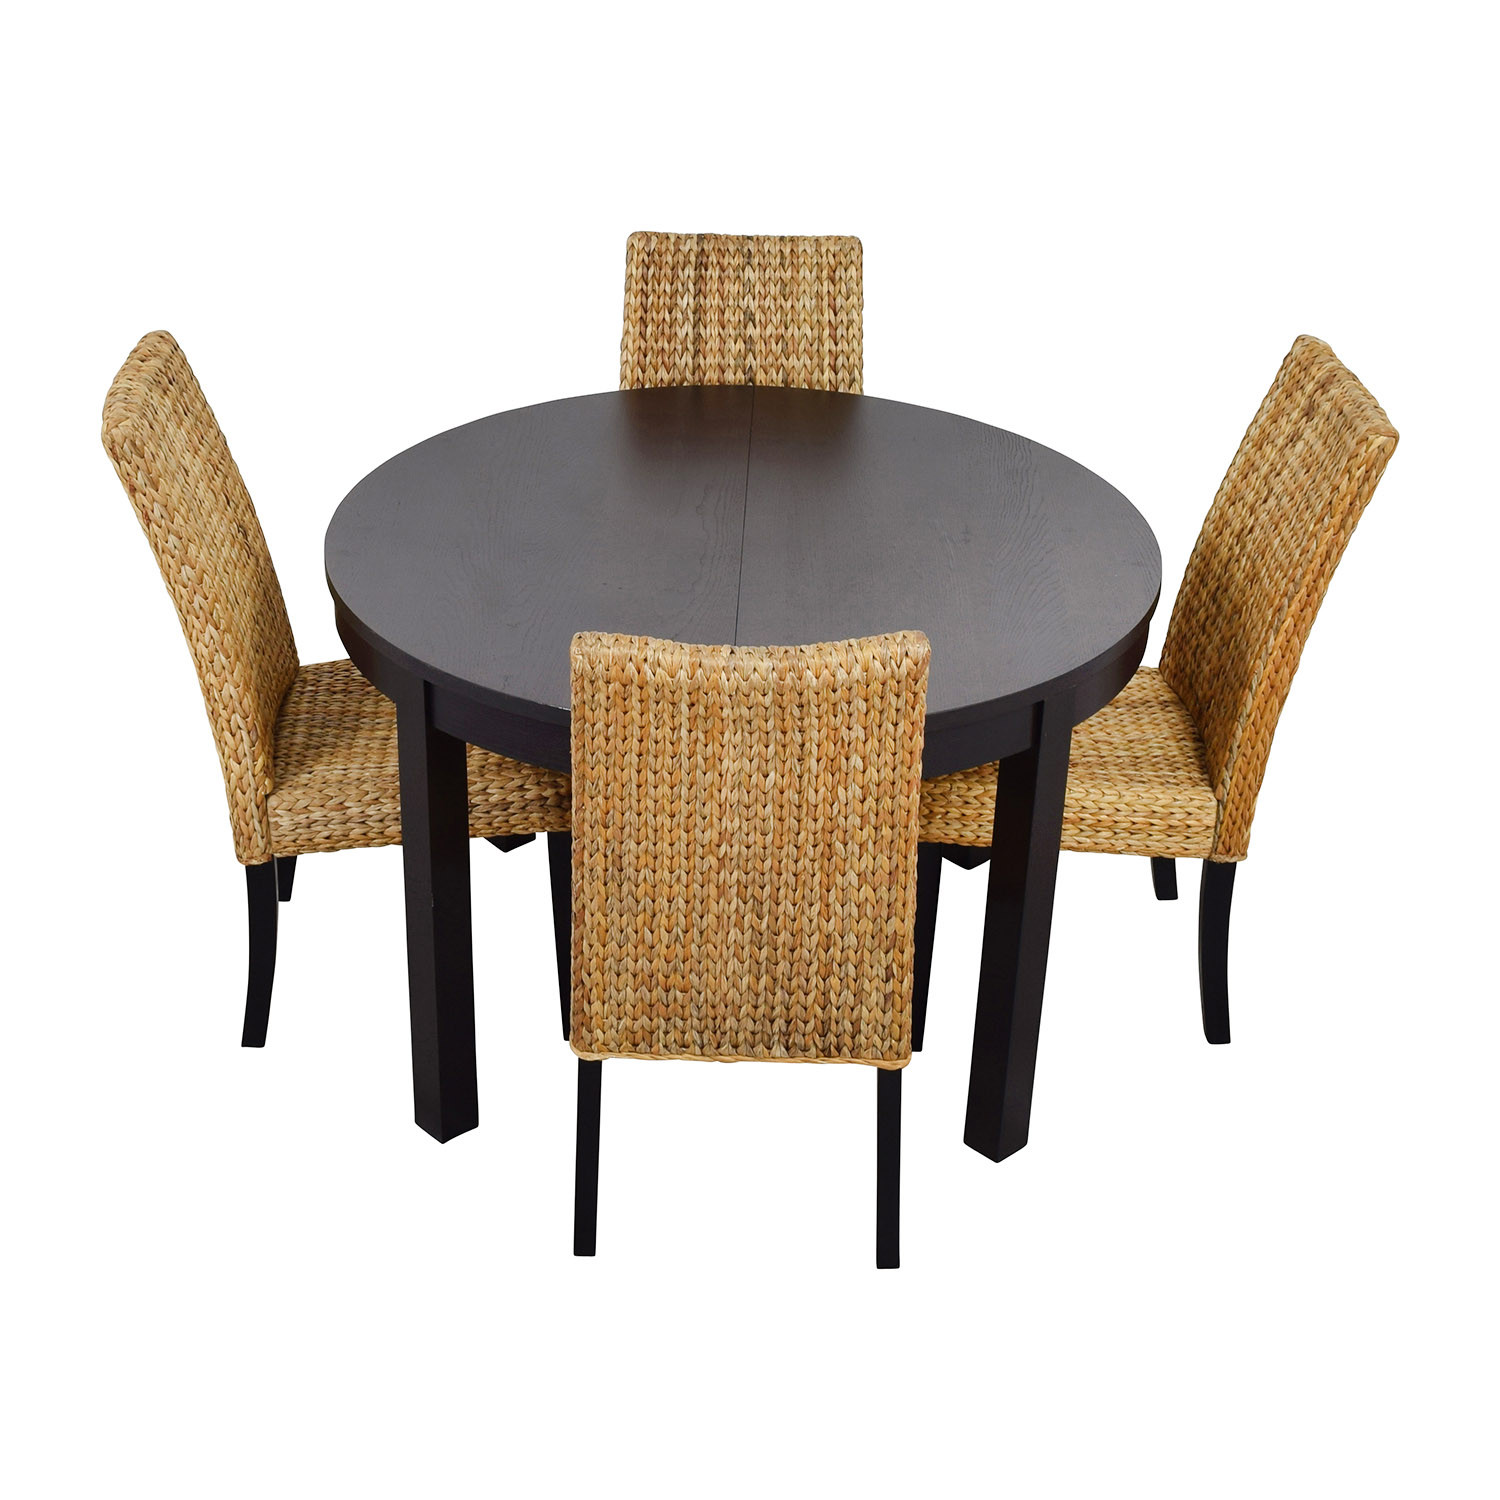 Best ideas about Ikea Round Dining Table . Save or Pin OFF Macy 039 s IKEA Round Black Dining Table Set With Now.